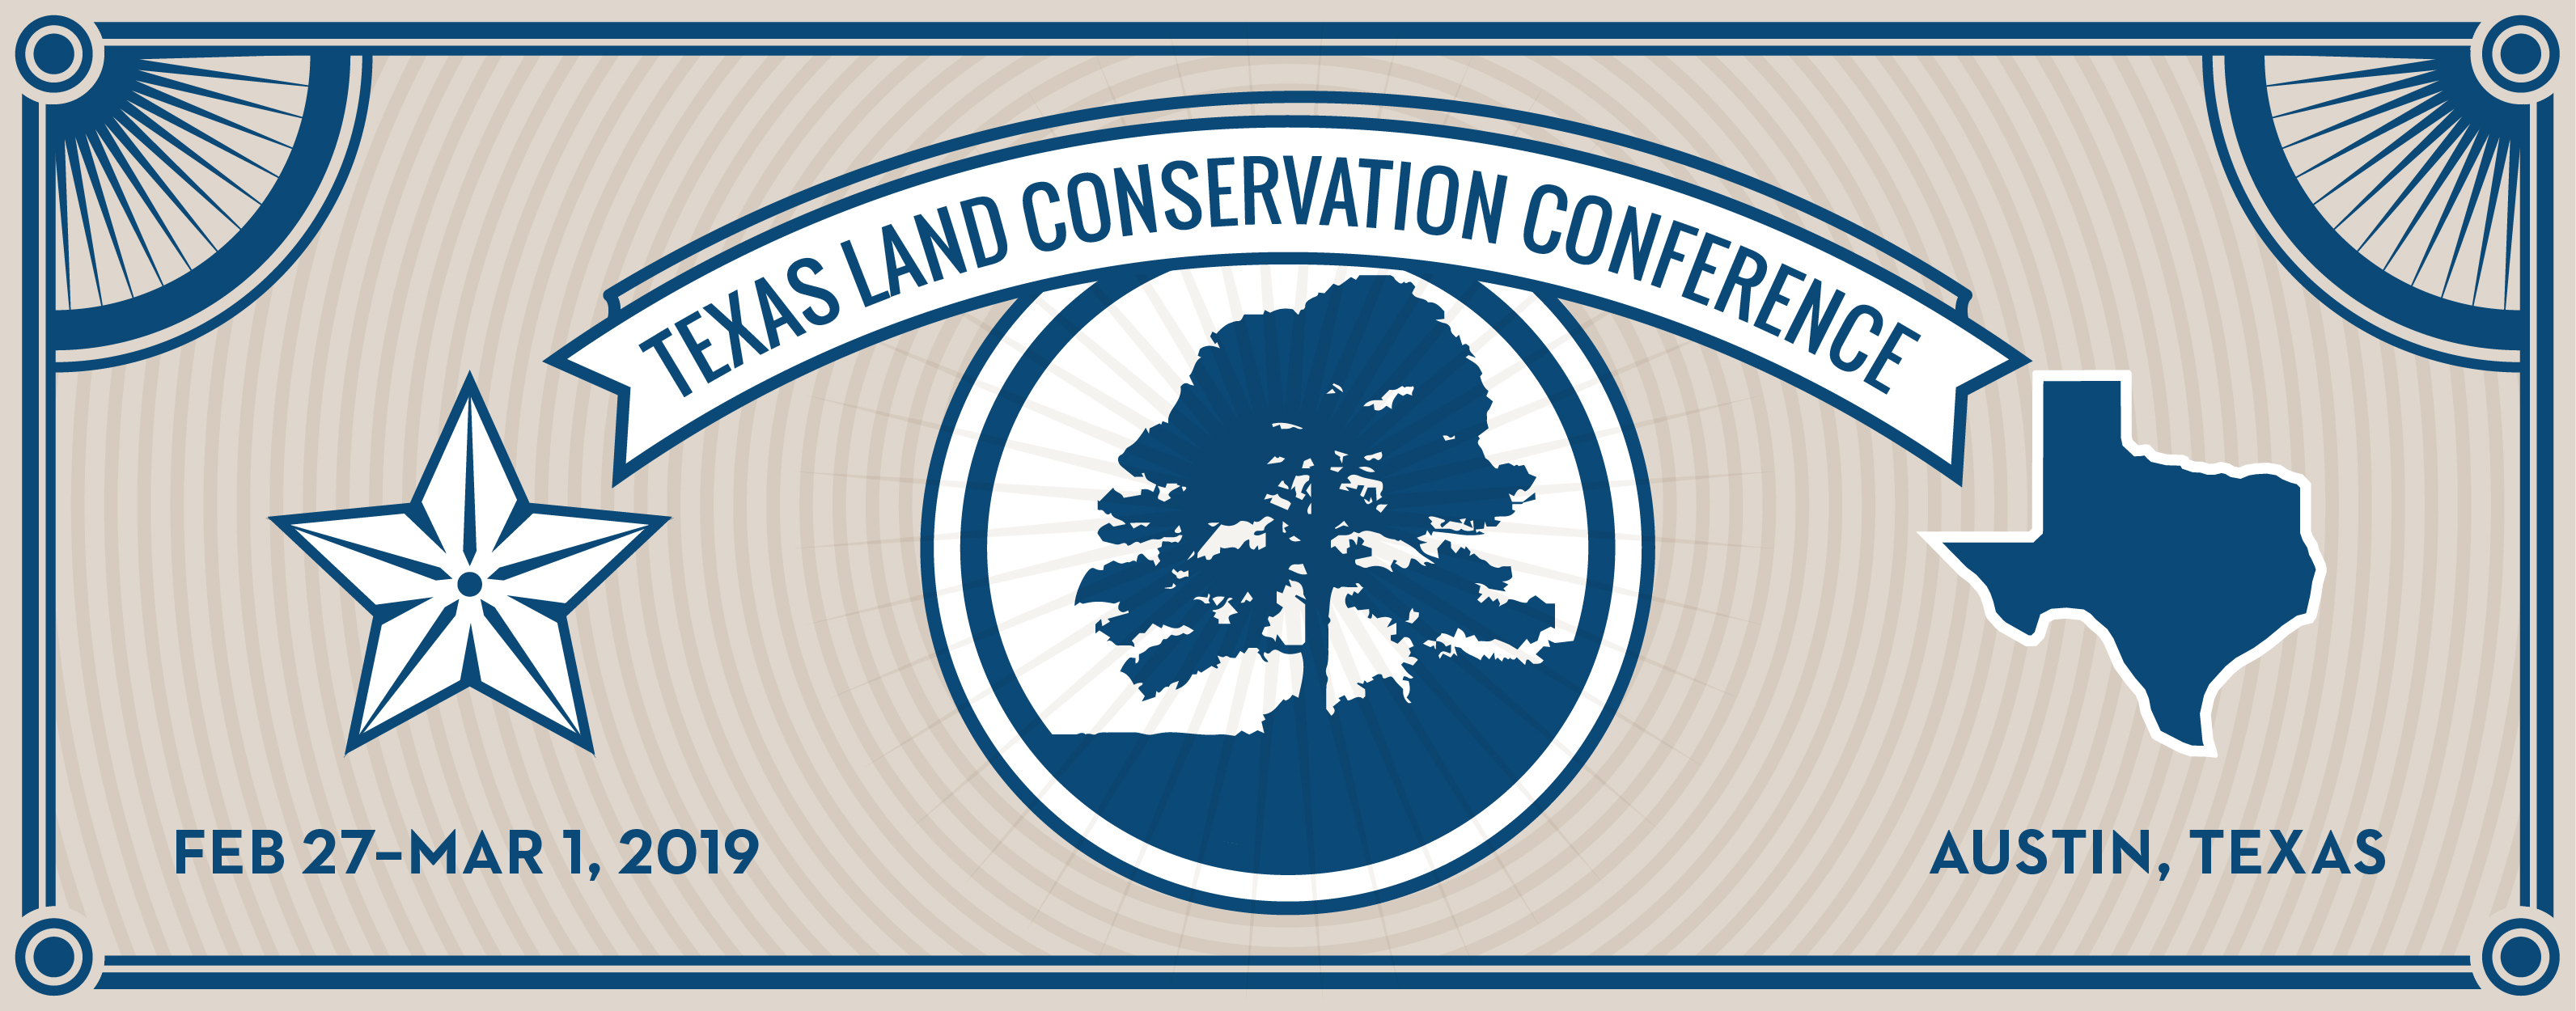 2019 Texas Land Conservation Conference